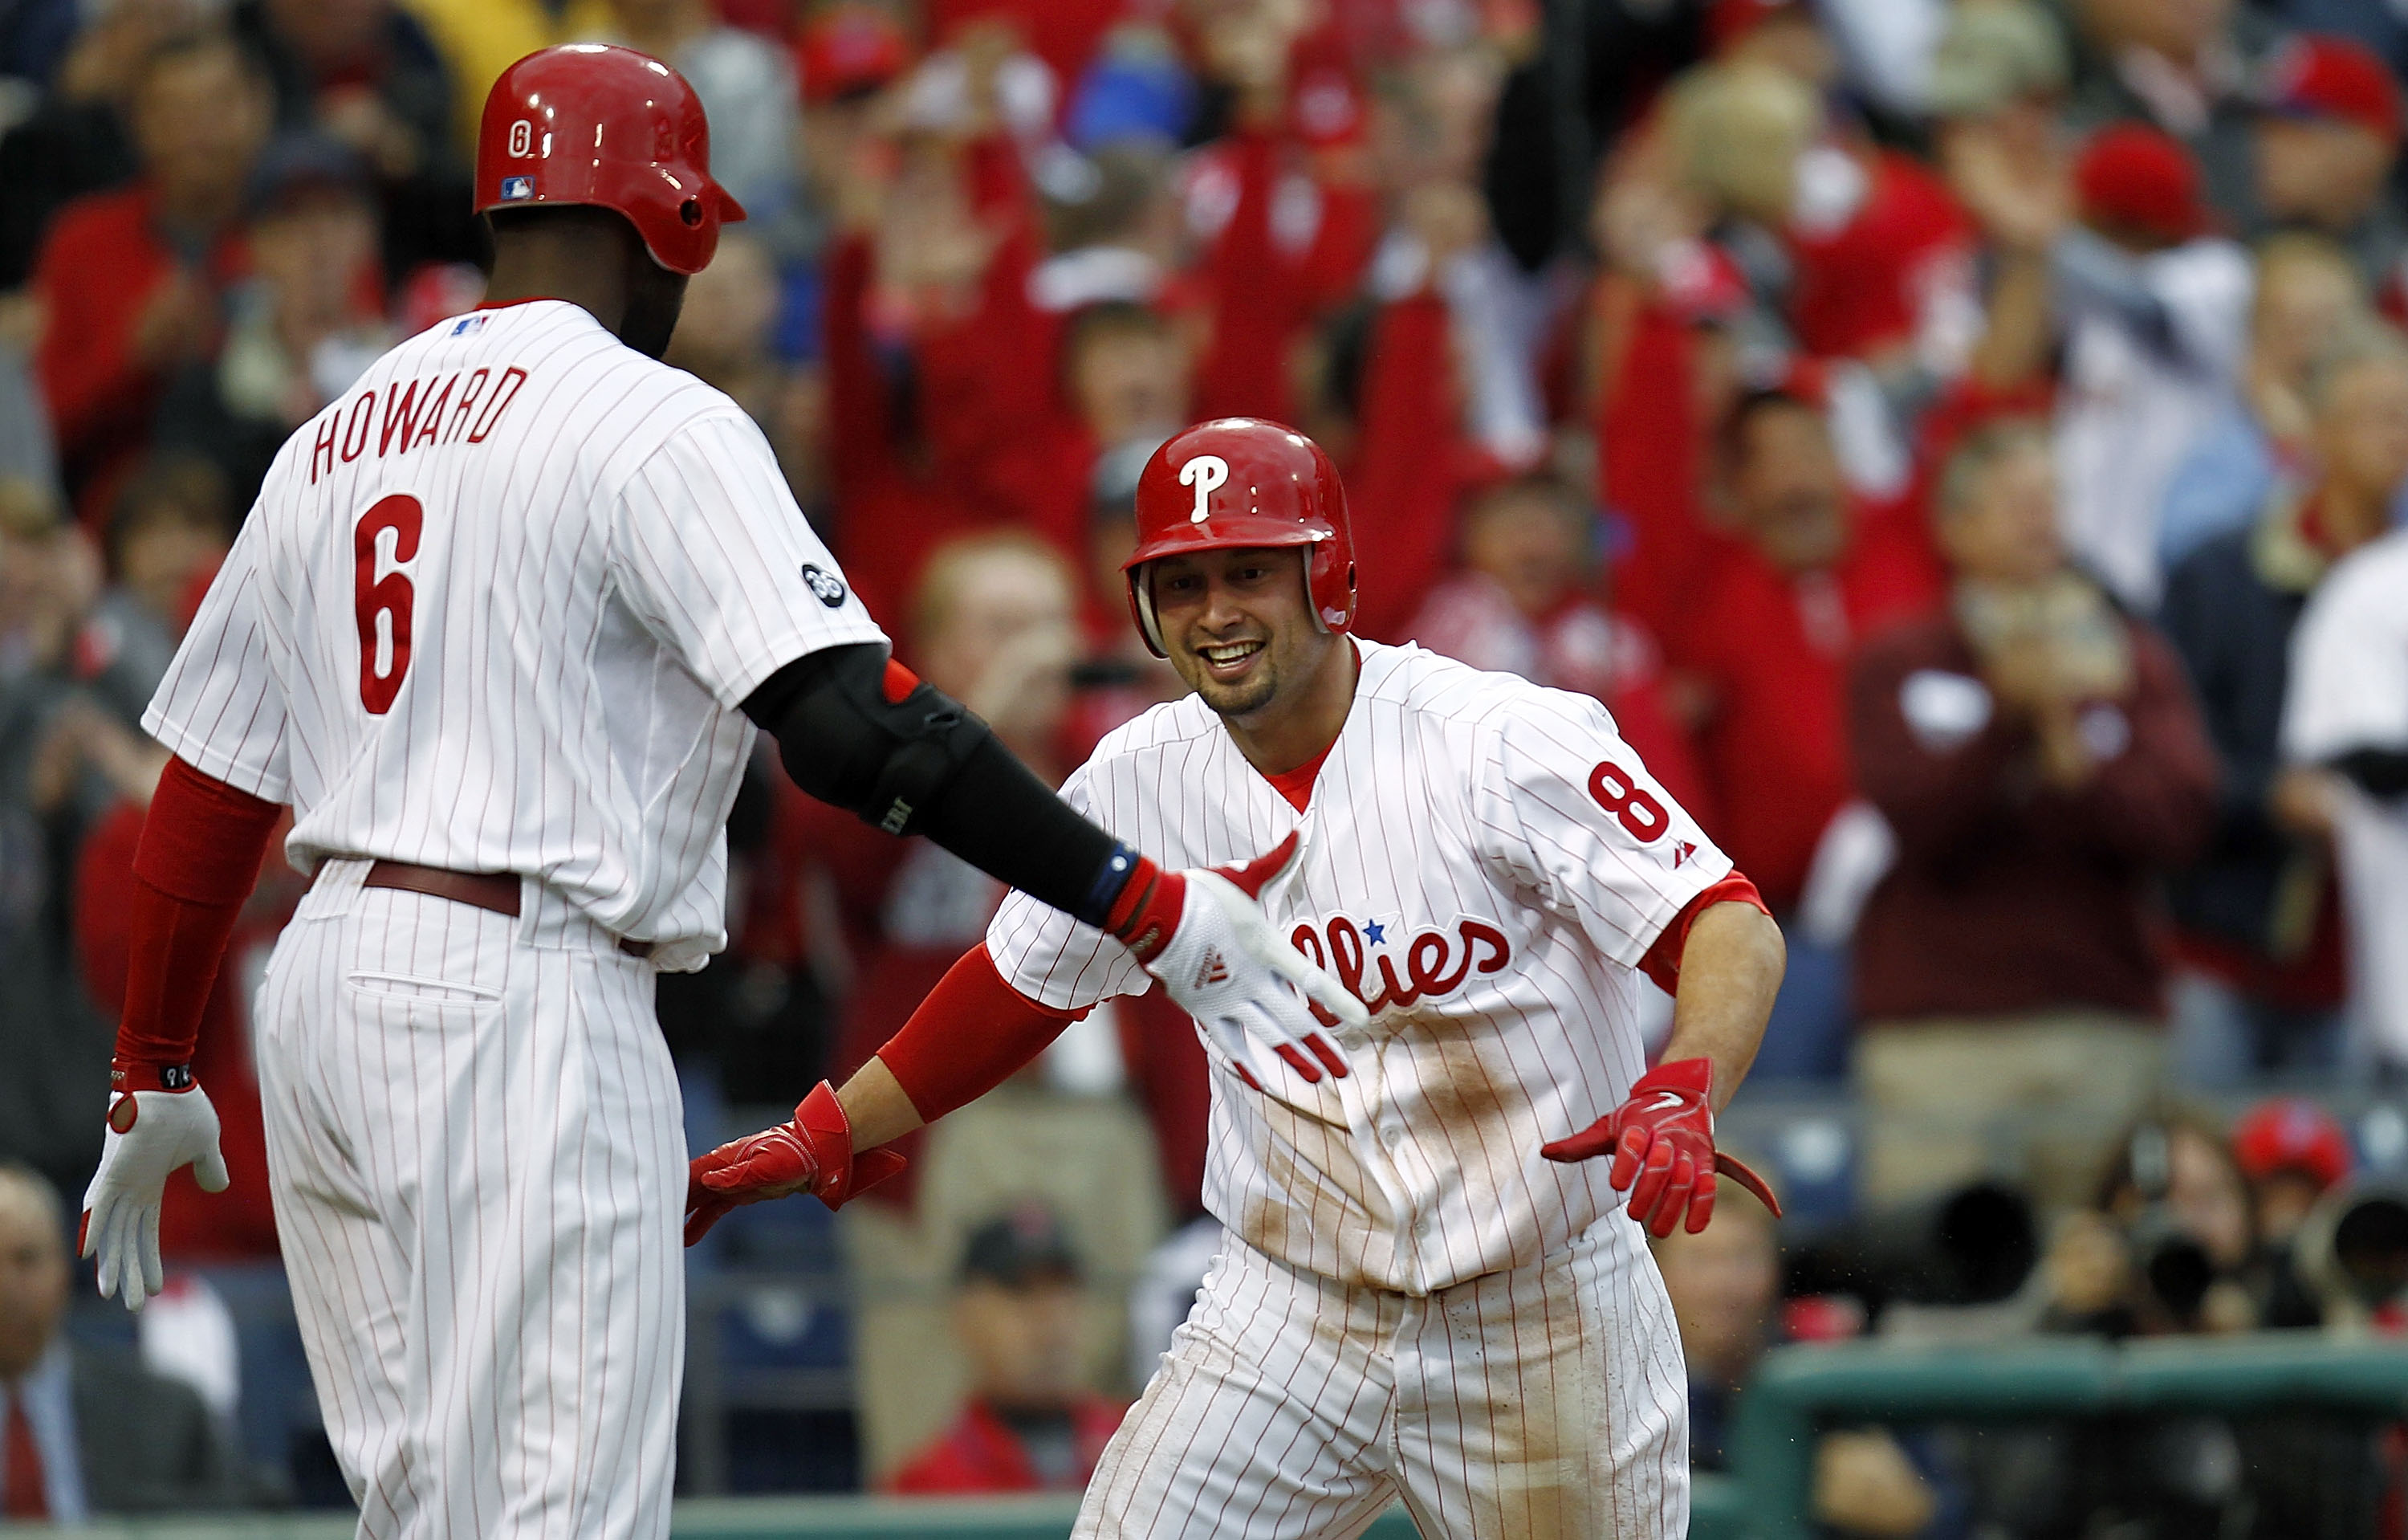 PHILADELPHIA - OCTOBER 06: Ryan Howard #6 and Shane Victorino #8 of the Philadelphia Phillies celebrate a run in Game 1 of the NLDS against the Cincinnati Reds at Citizens Bank Park on October 6, 2010 in Philadelphia, Pennsylvania.  (Photo by Jeff Zelevan